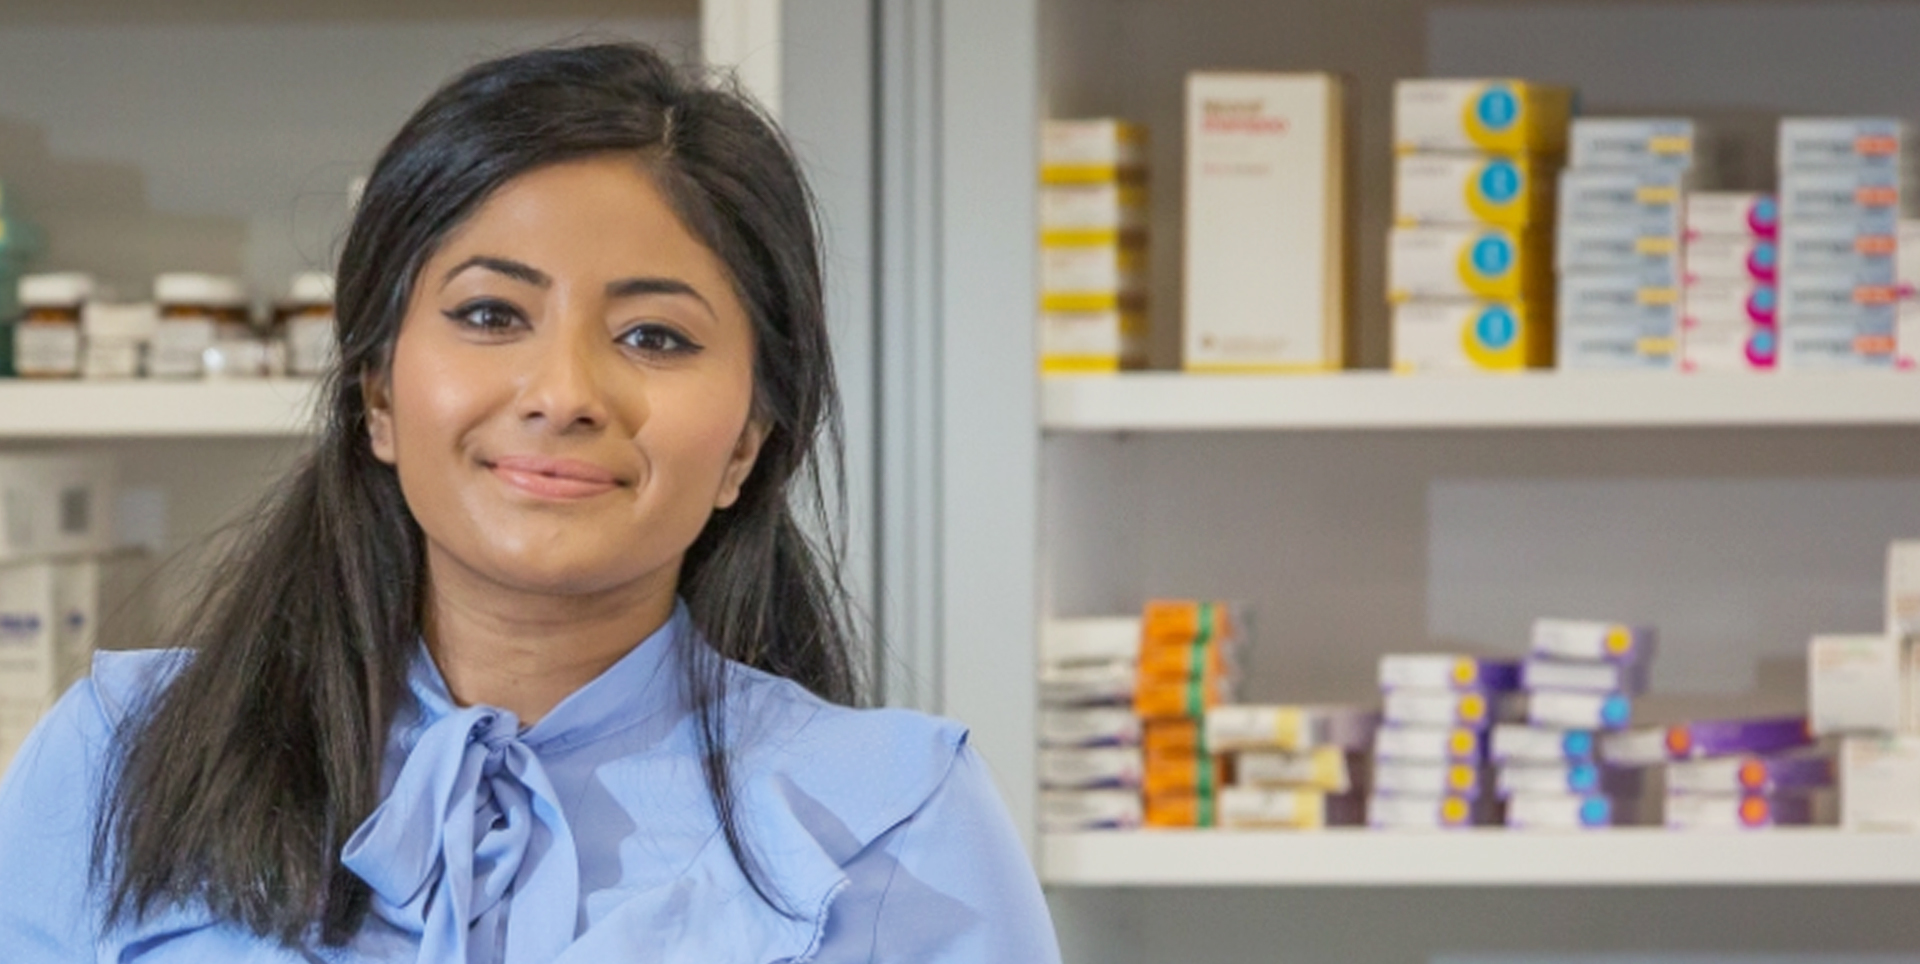 Photo of Tahmina Rokib, Clinical Lead for Digital Medicines at NHS Digital, in a pharmacy